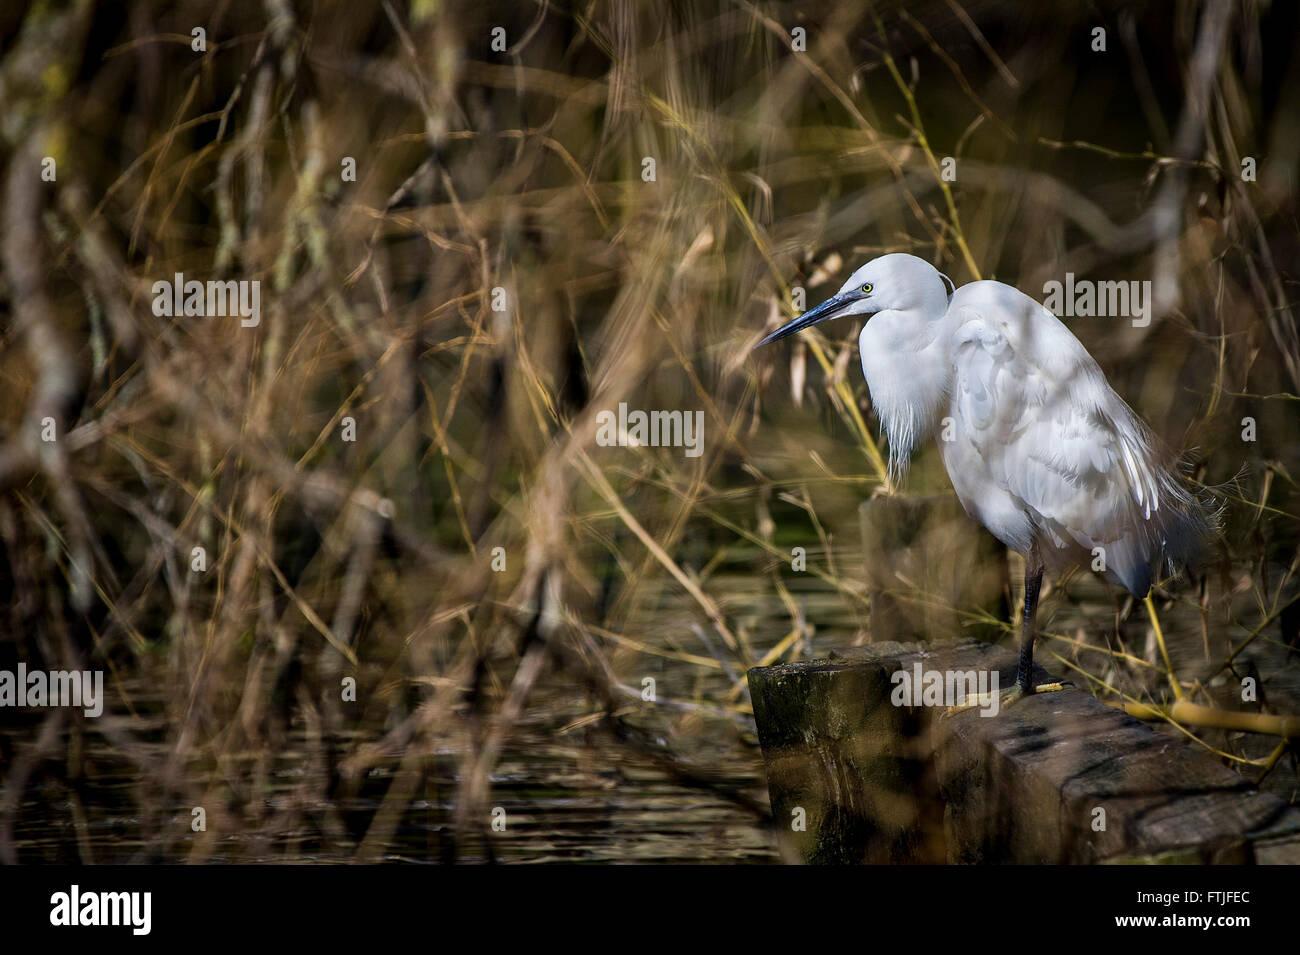 A Little Egret perched on the side of a lake iNewquay, Cornwall. - Stock Image